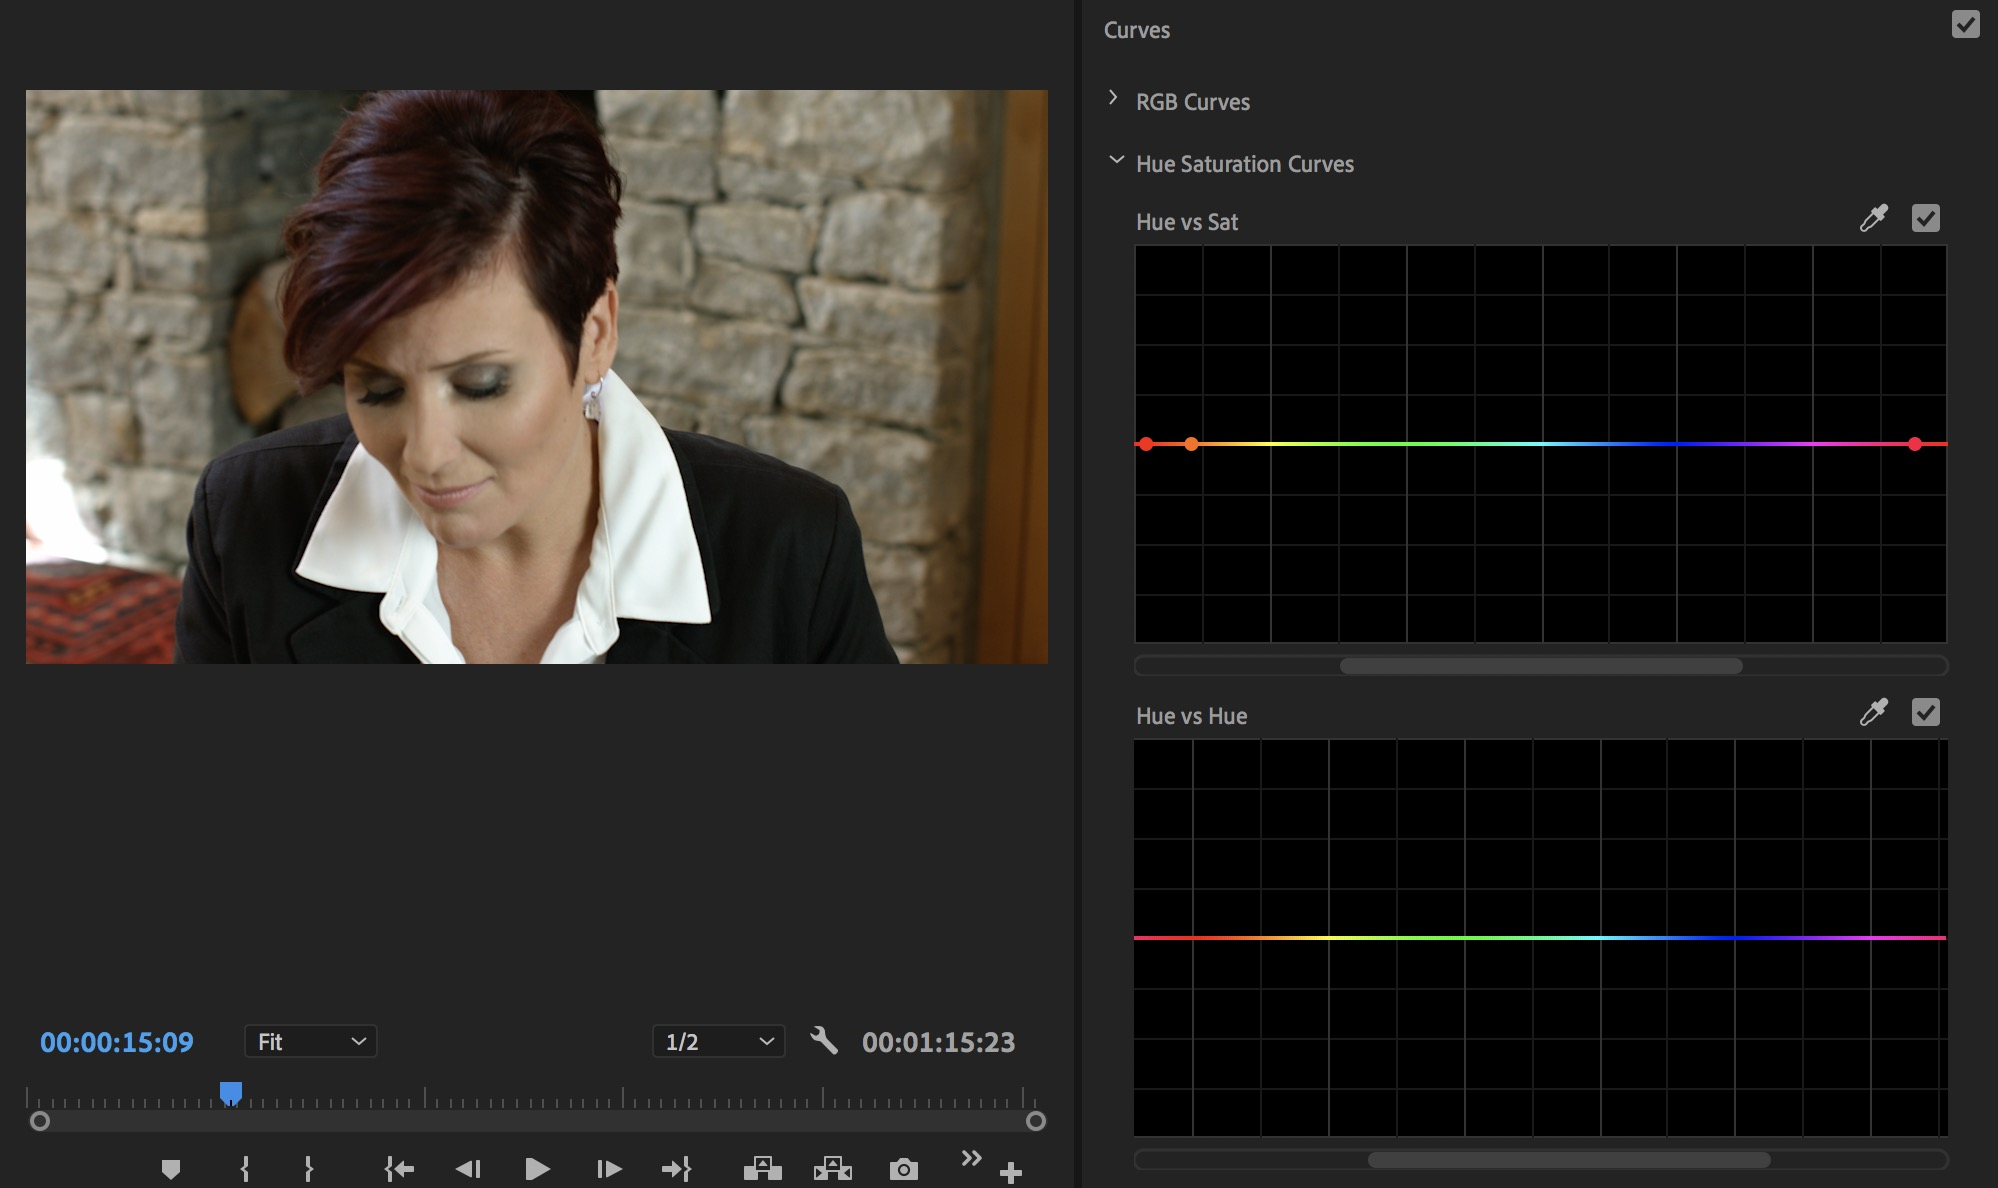 The Adobe Premiere Pro Fall 2018 update - better color and